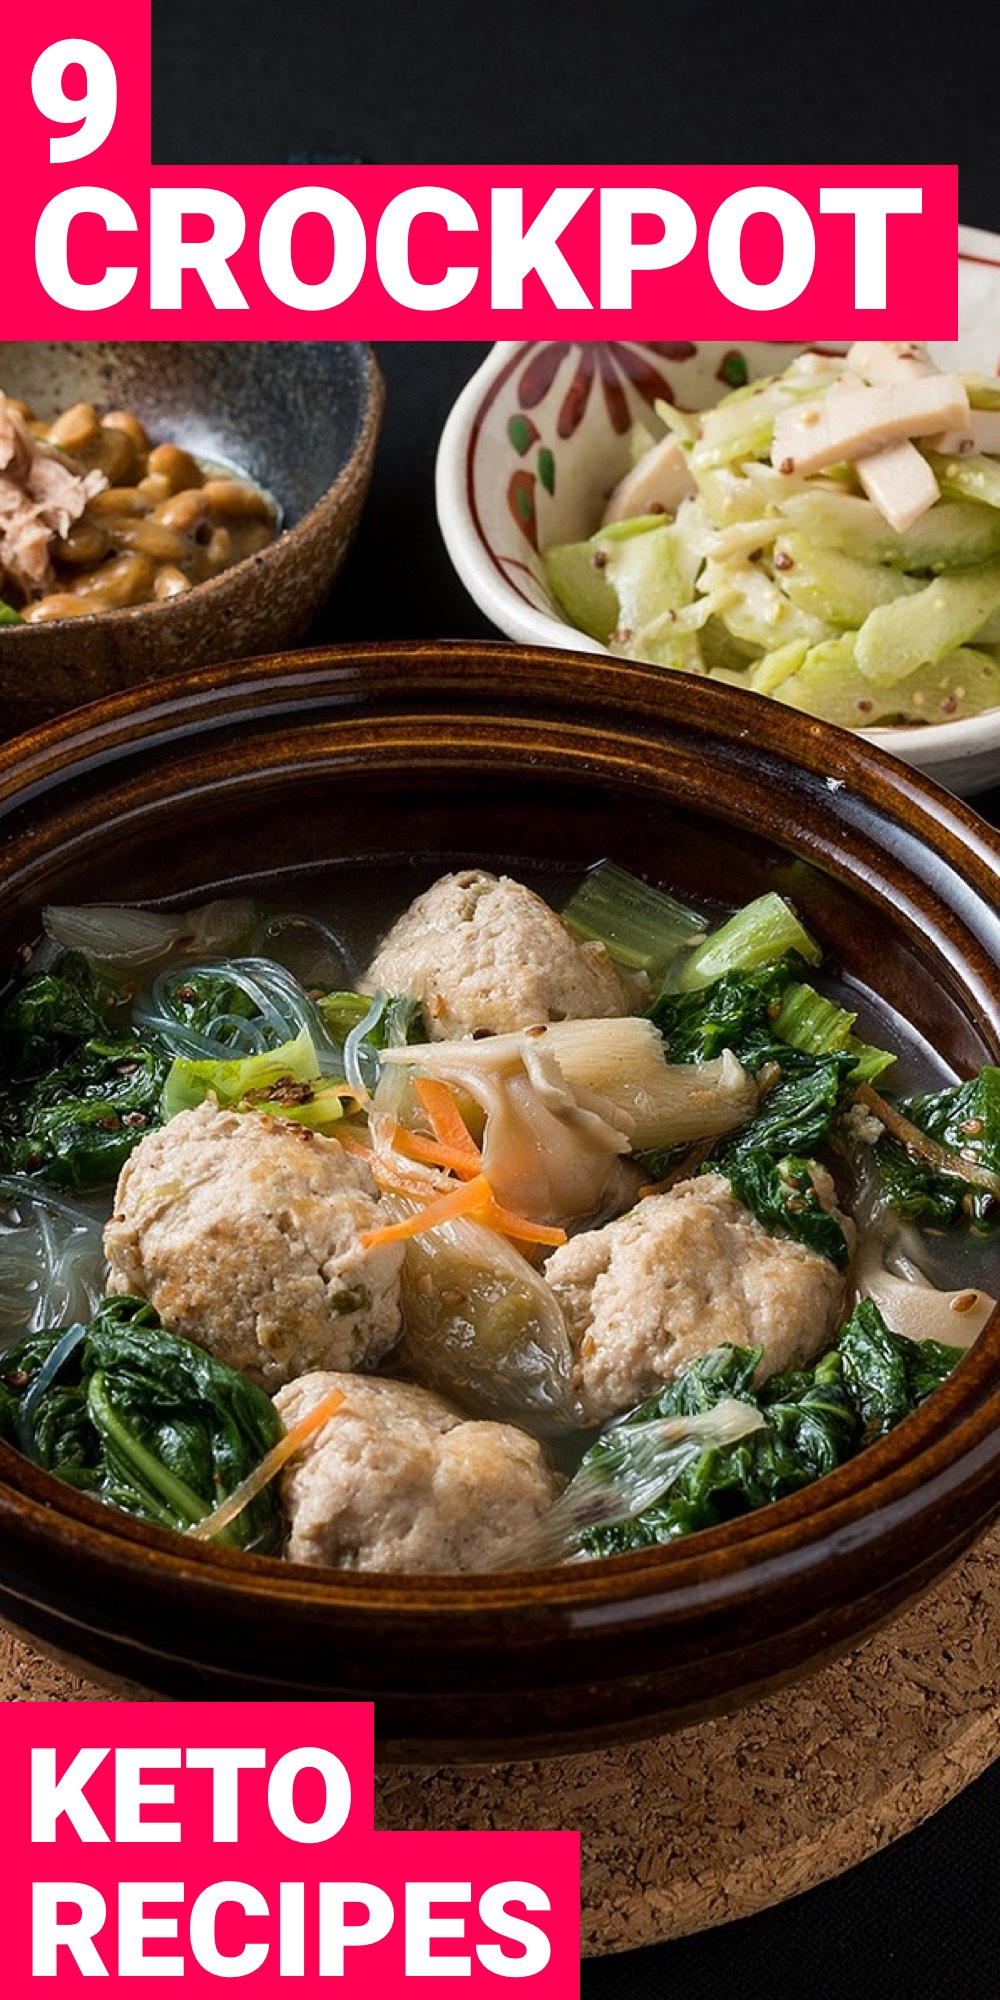 Keto crockpot recipes make it easy to stick to the ketogenic diet. You dump the food into the pot and then you're good to go.